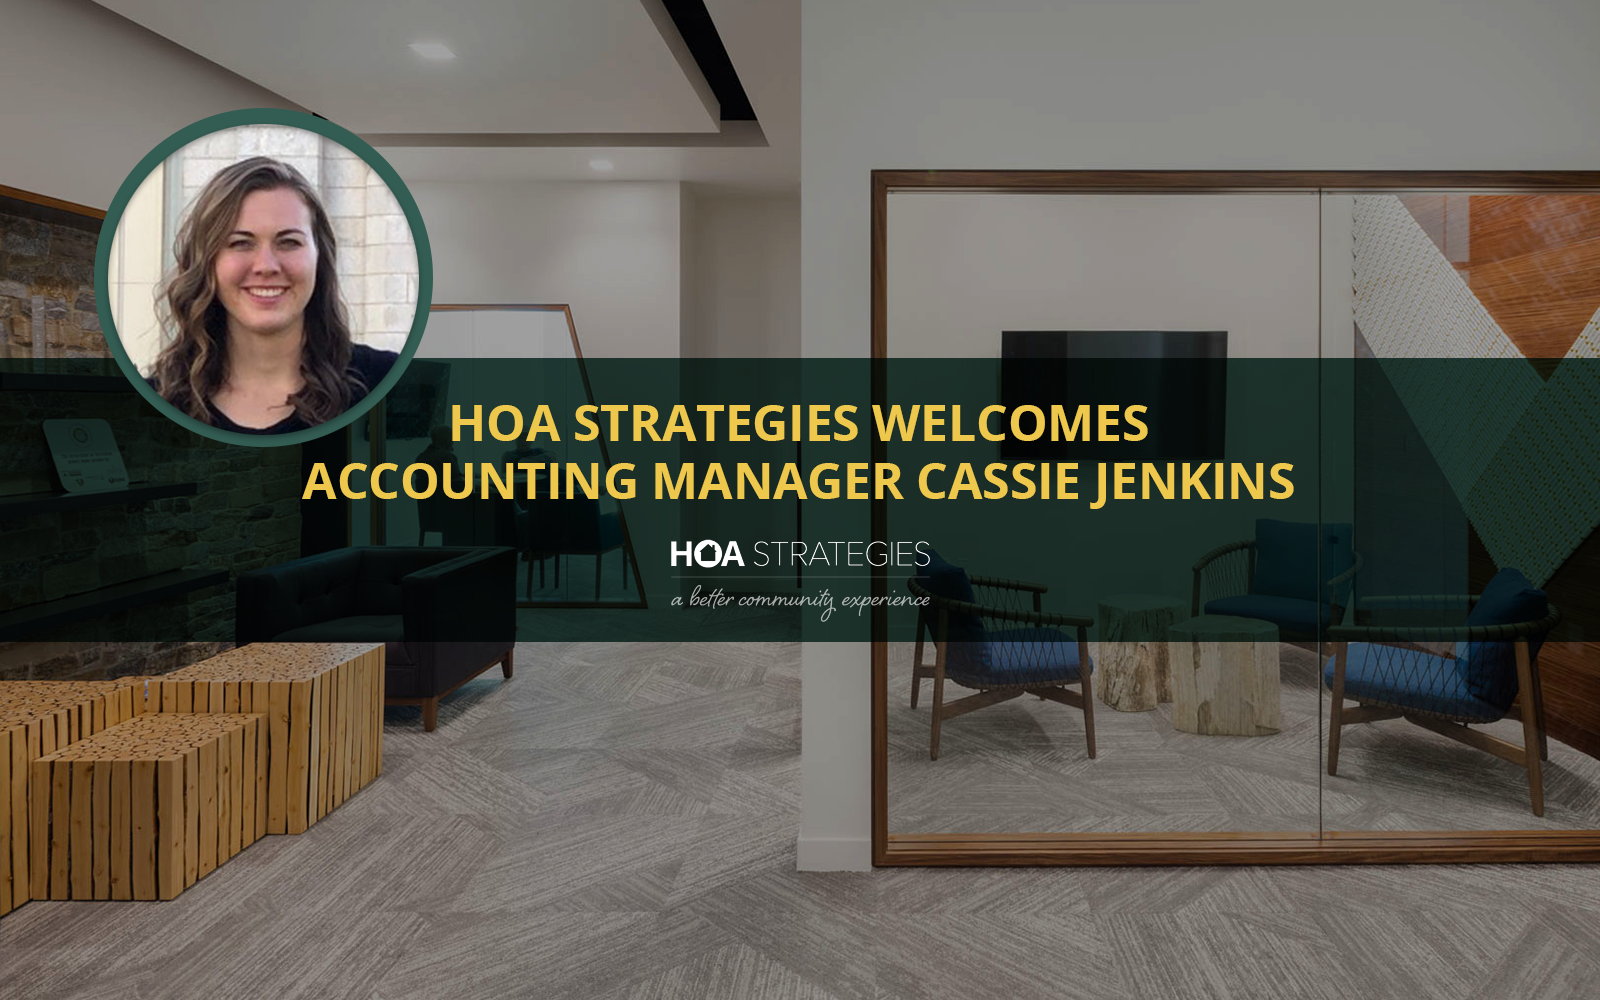 HOA Strategies New Accounting Manager